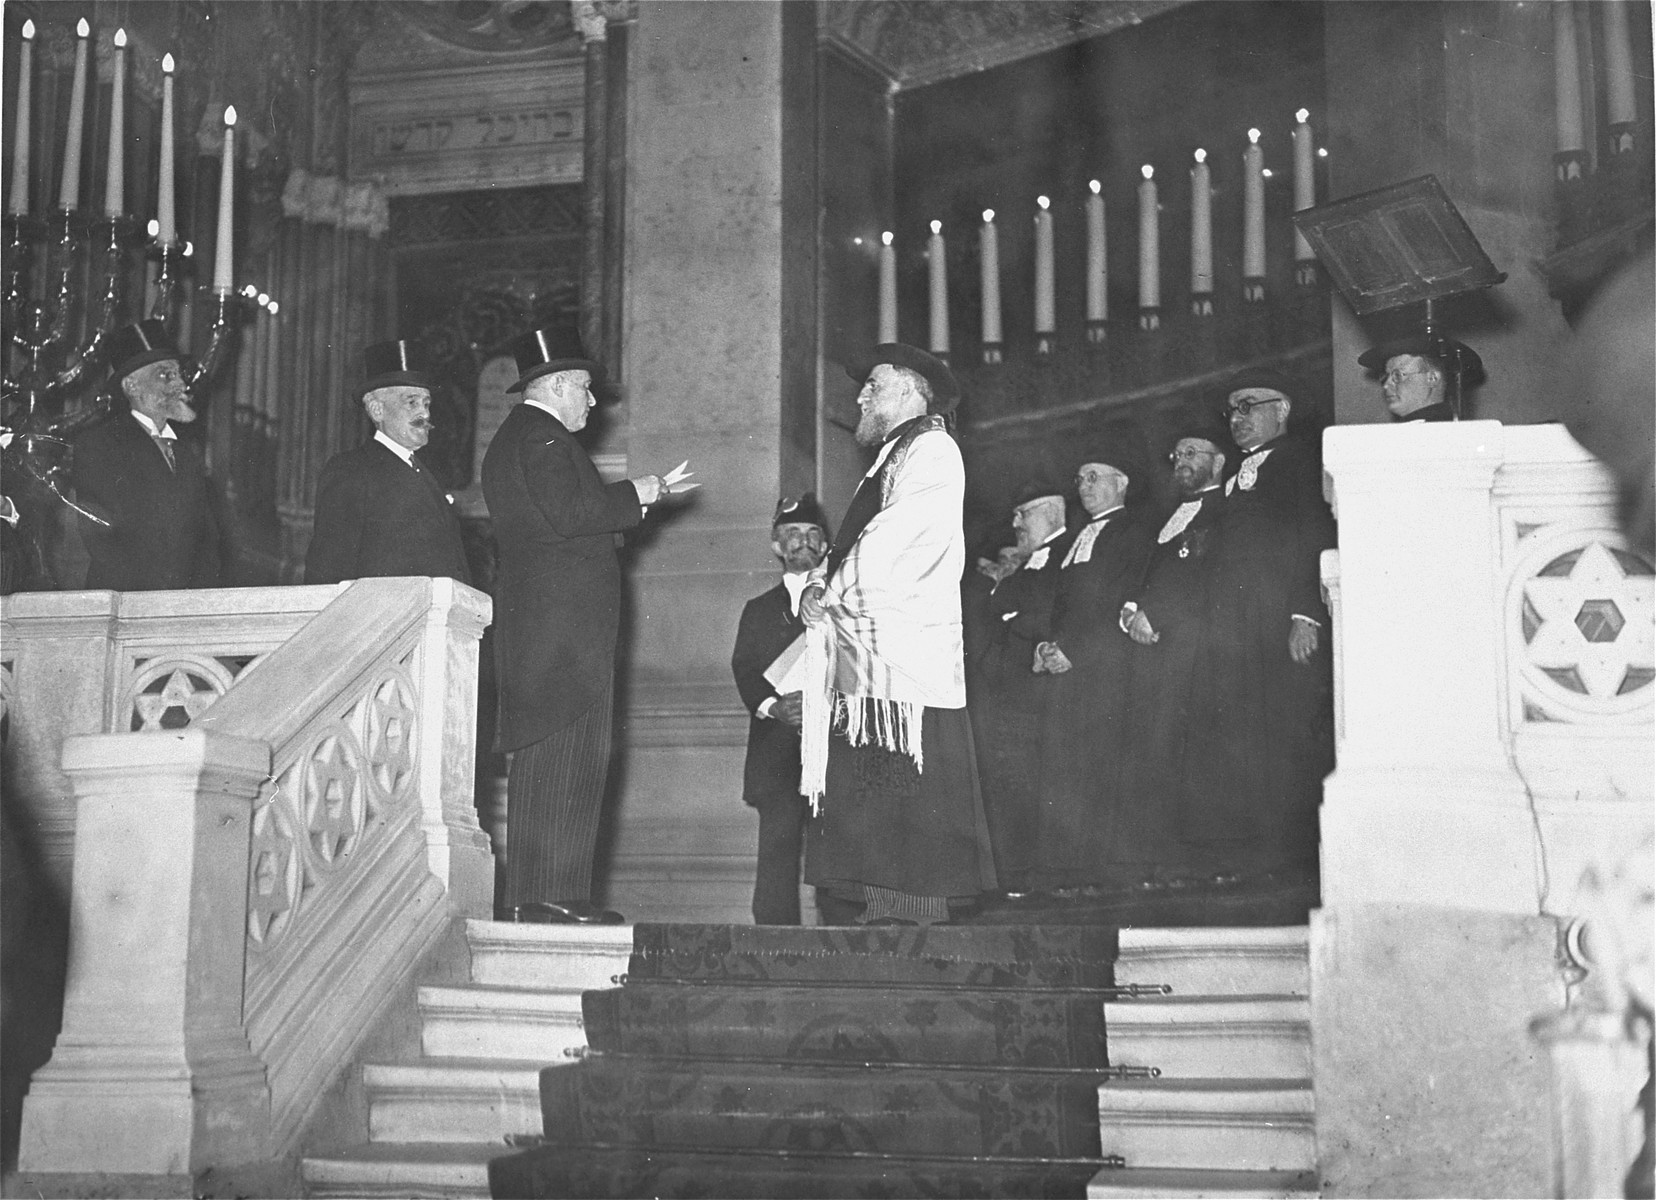 Baron Edmond de Rothschild gives a speech at the installation of the new Chief Rabbi of France, Isaie Schwartz.